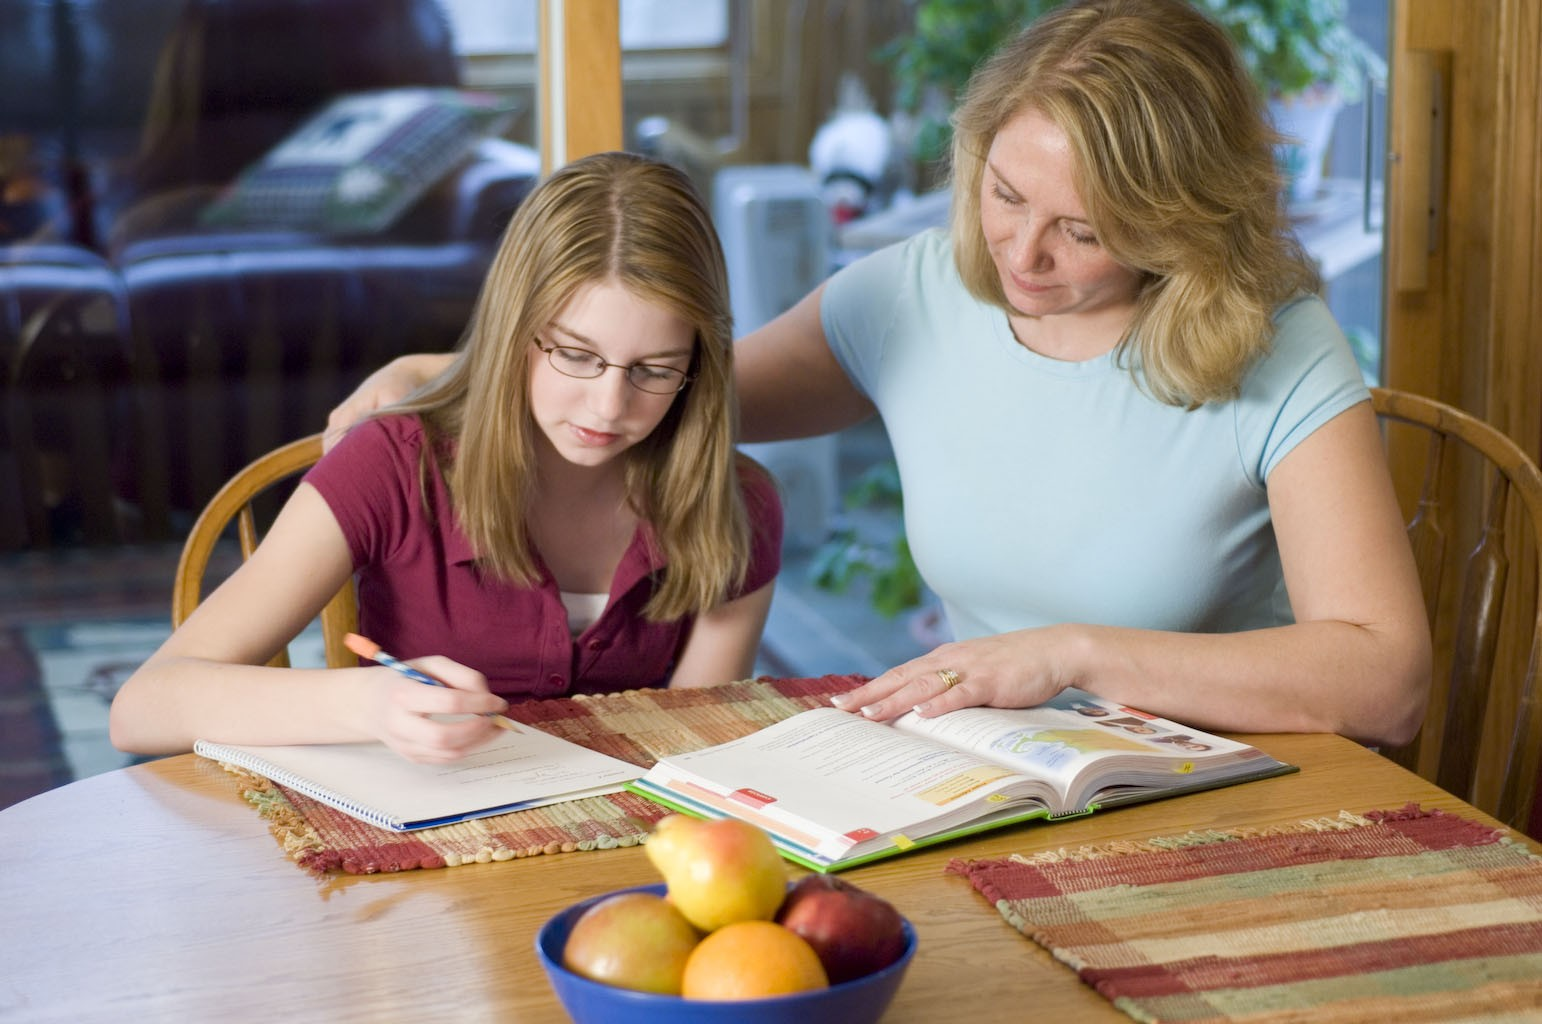 My editorial on Getting Smart about home schooling